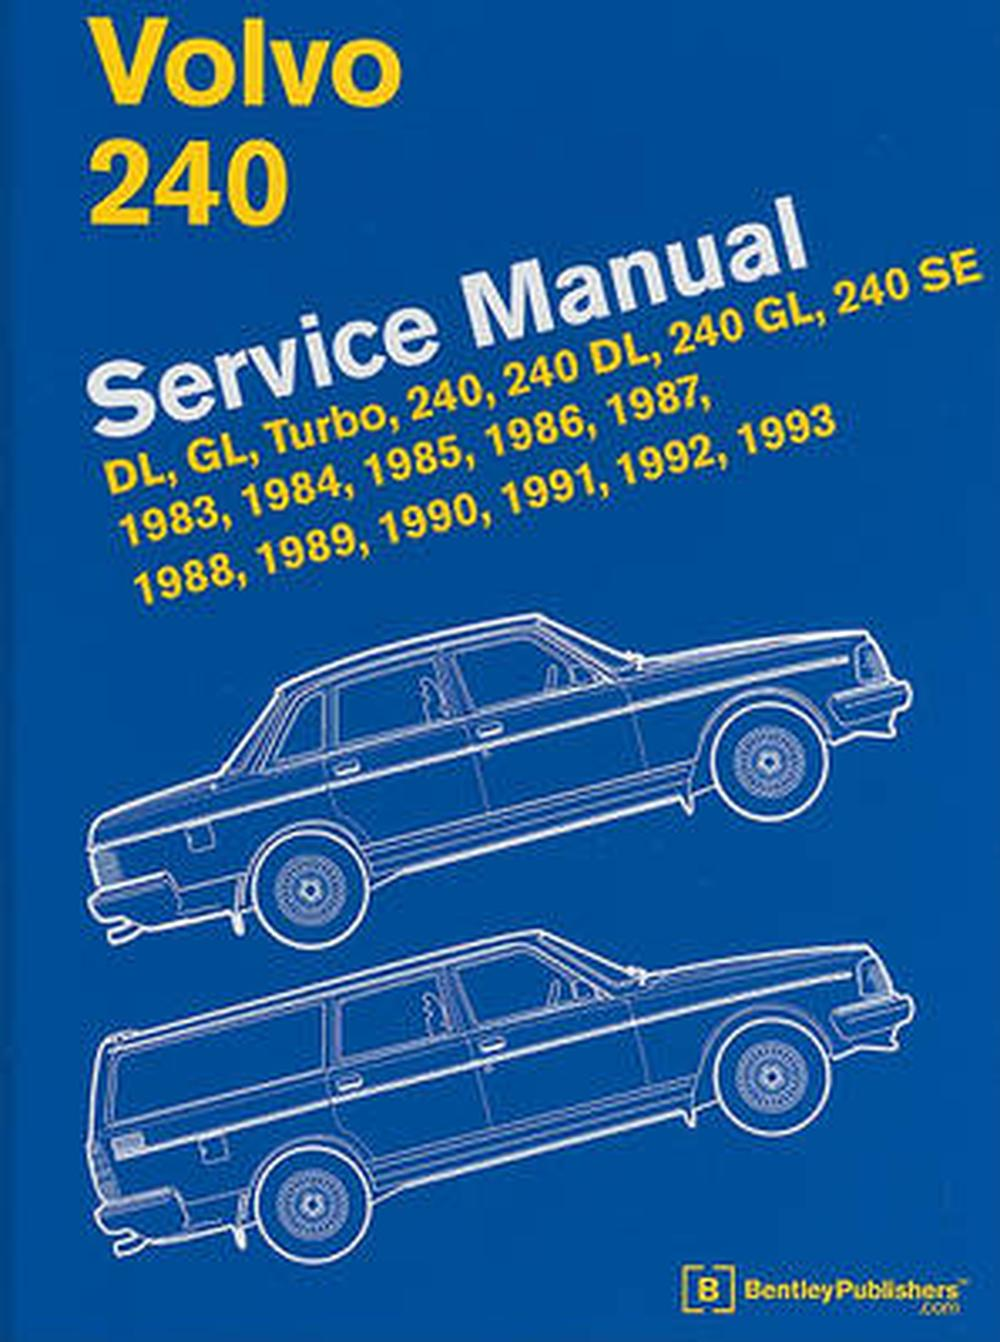 Volvo 240 service manual dl gl turbo 240 240 dl 240 for 2011 mercedes benz gl450 owners manual